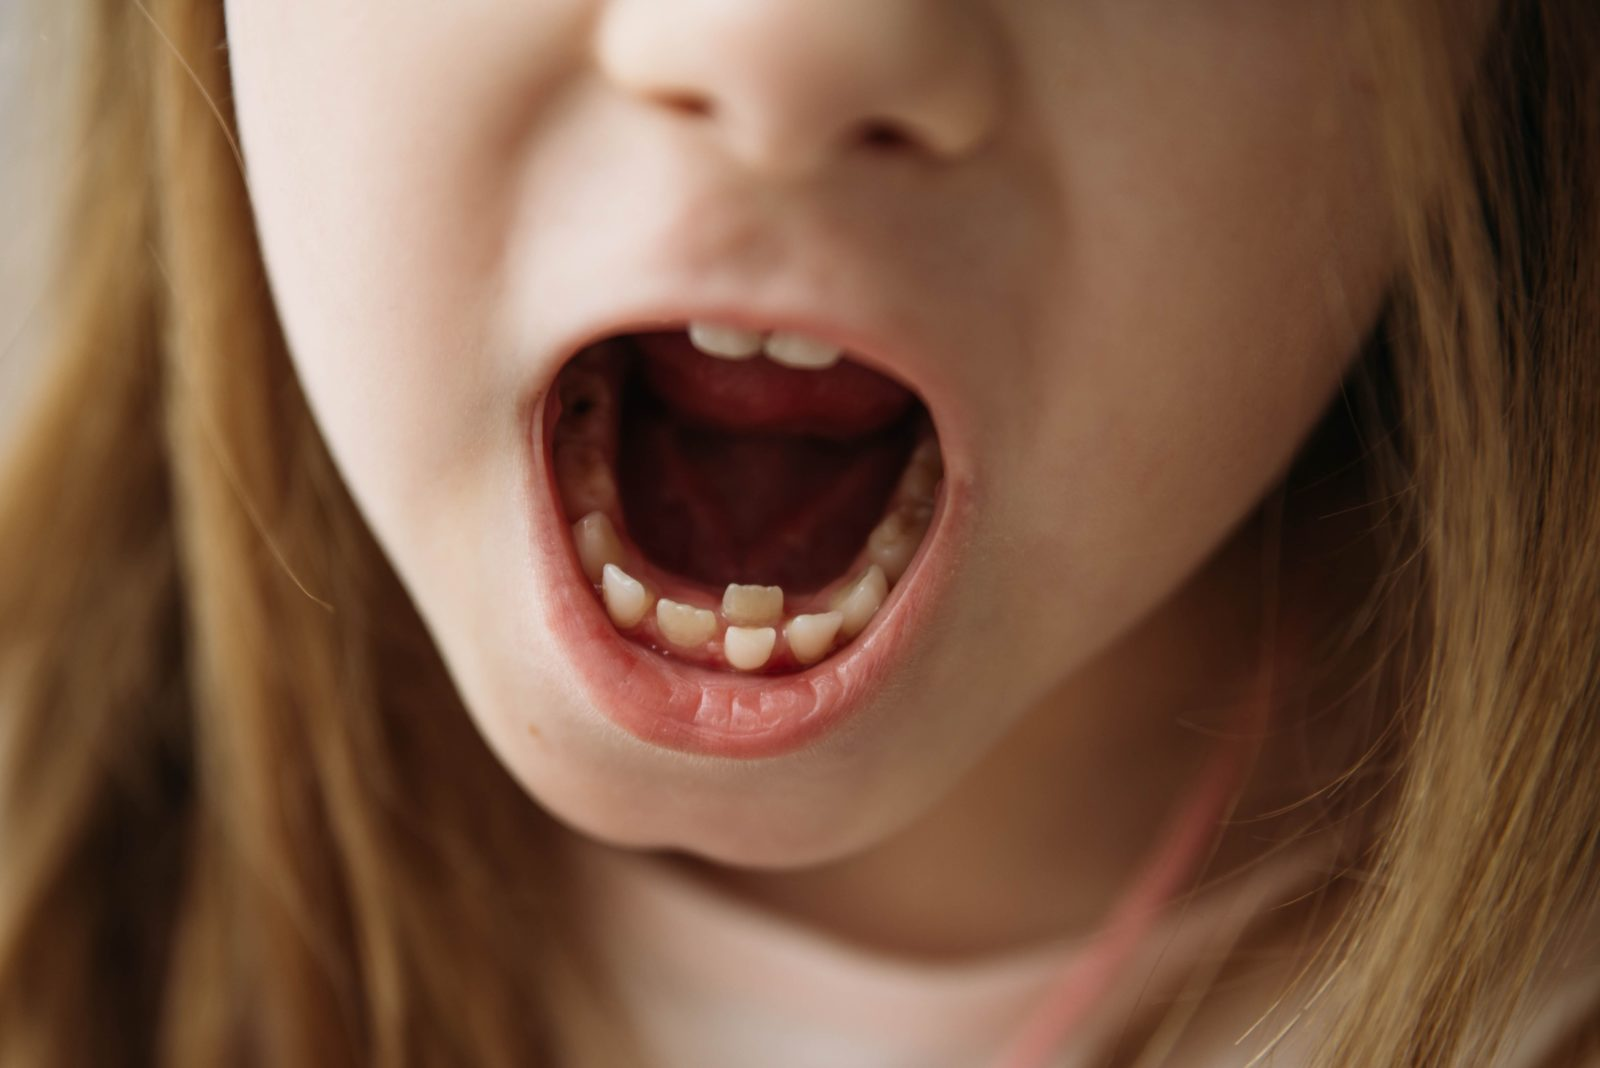 young girl with over-retained baby tooth